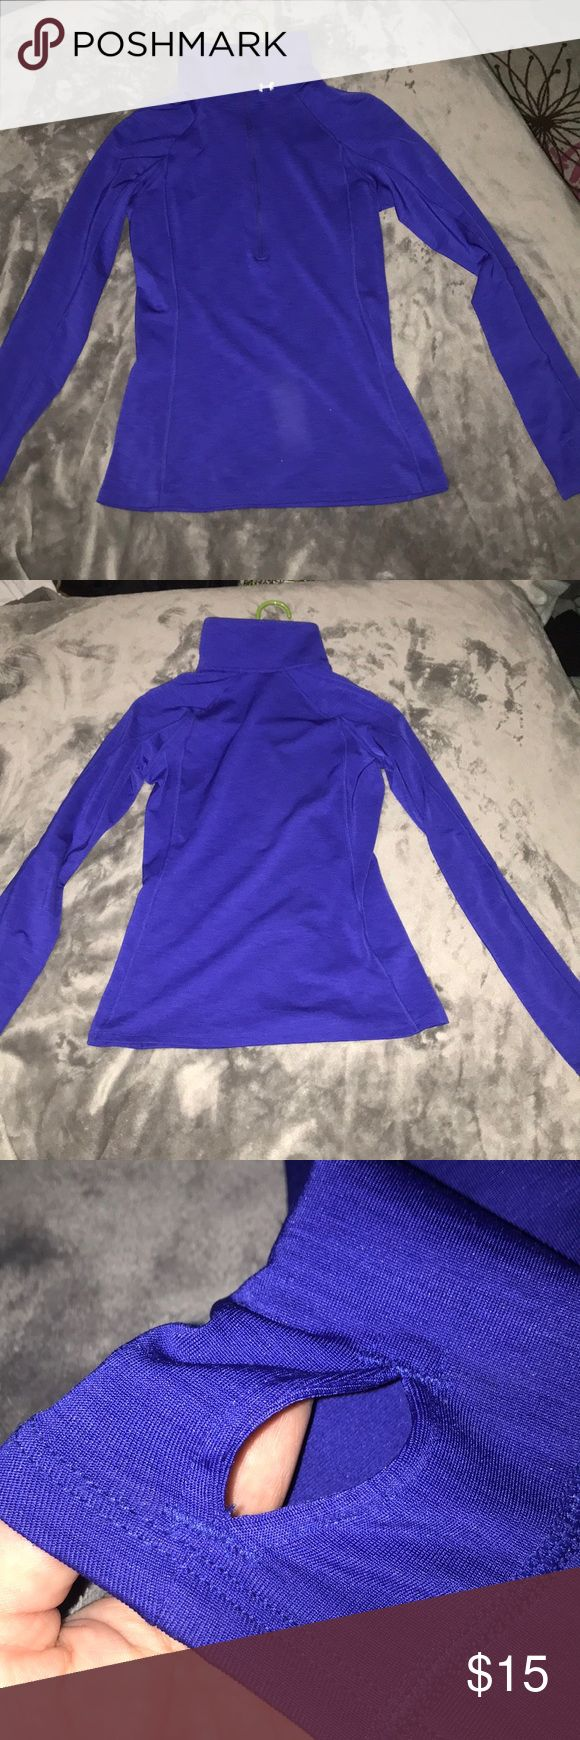 Half Zip Compression jacket Very comfortable and warm! Under Armour Jackets & Coats